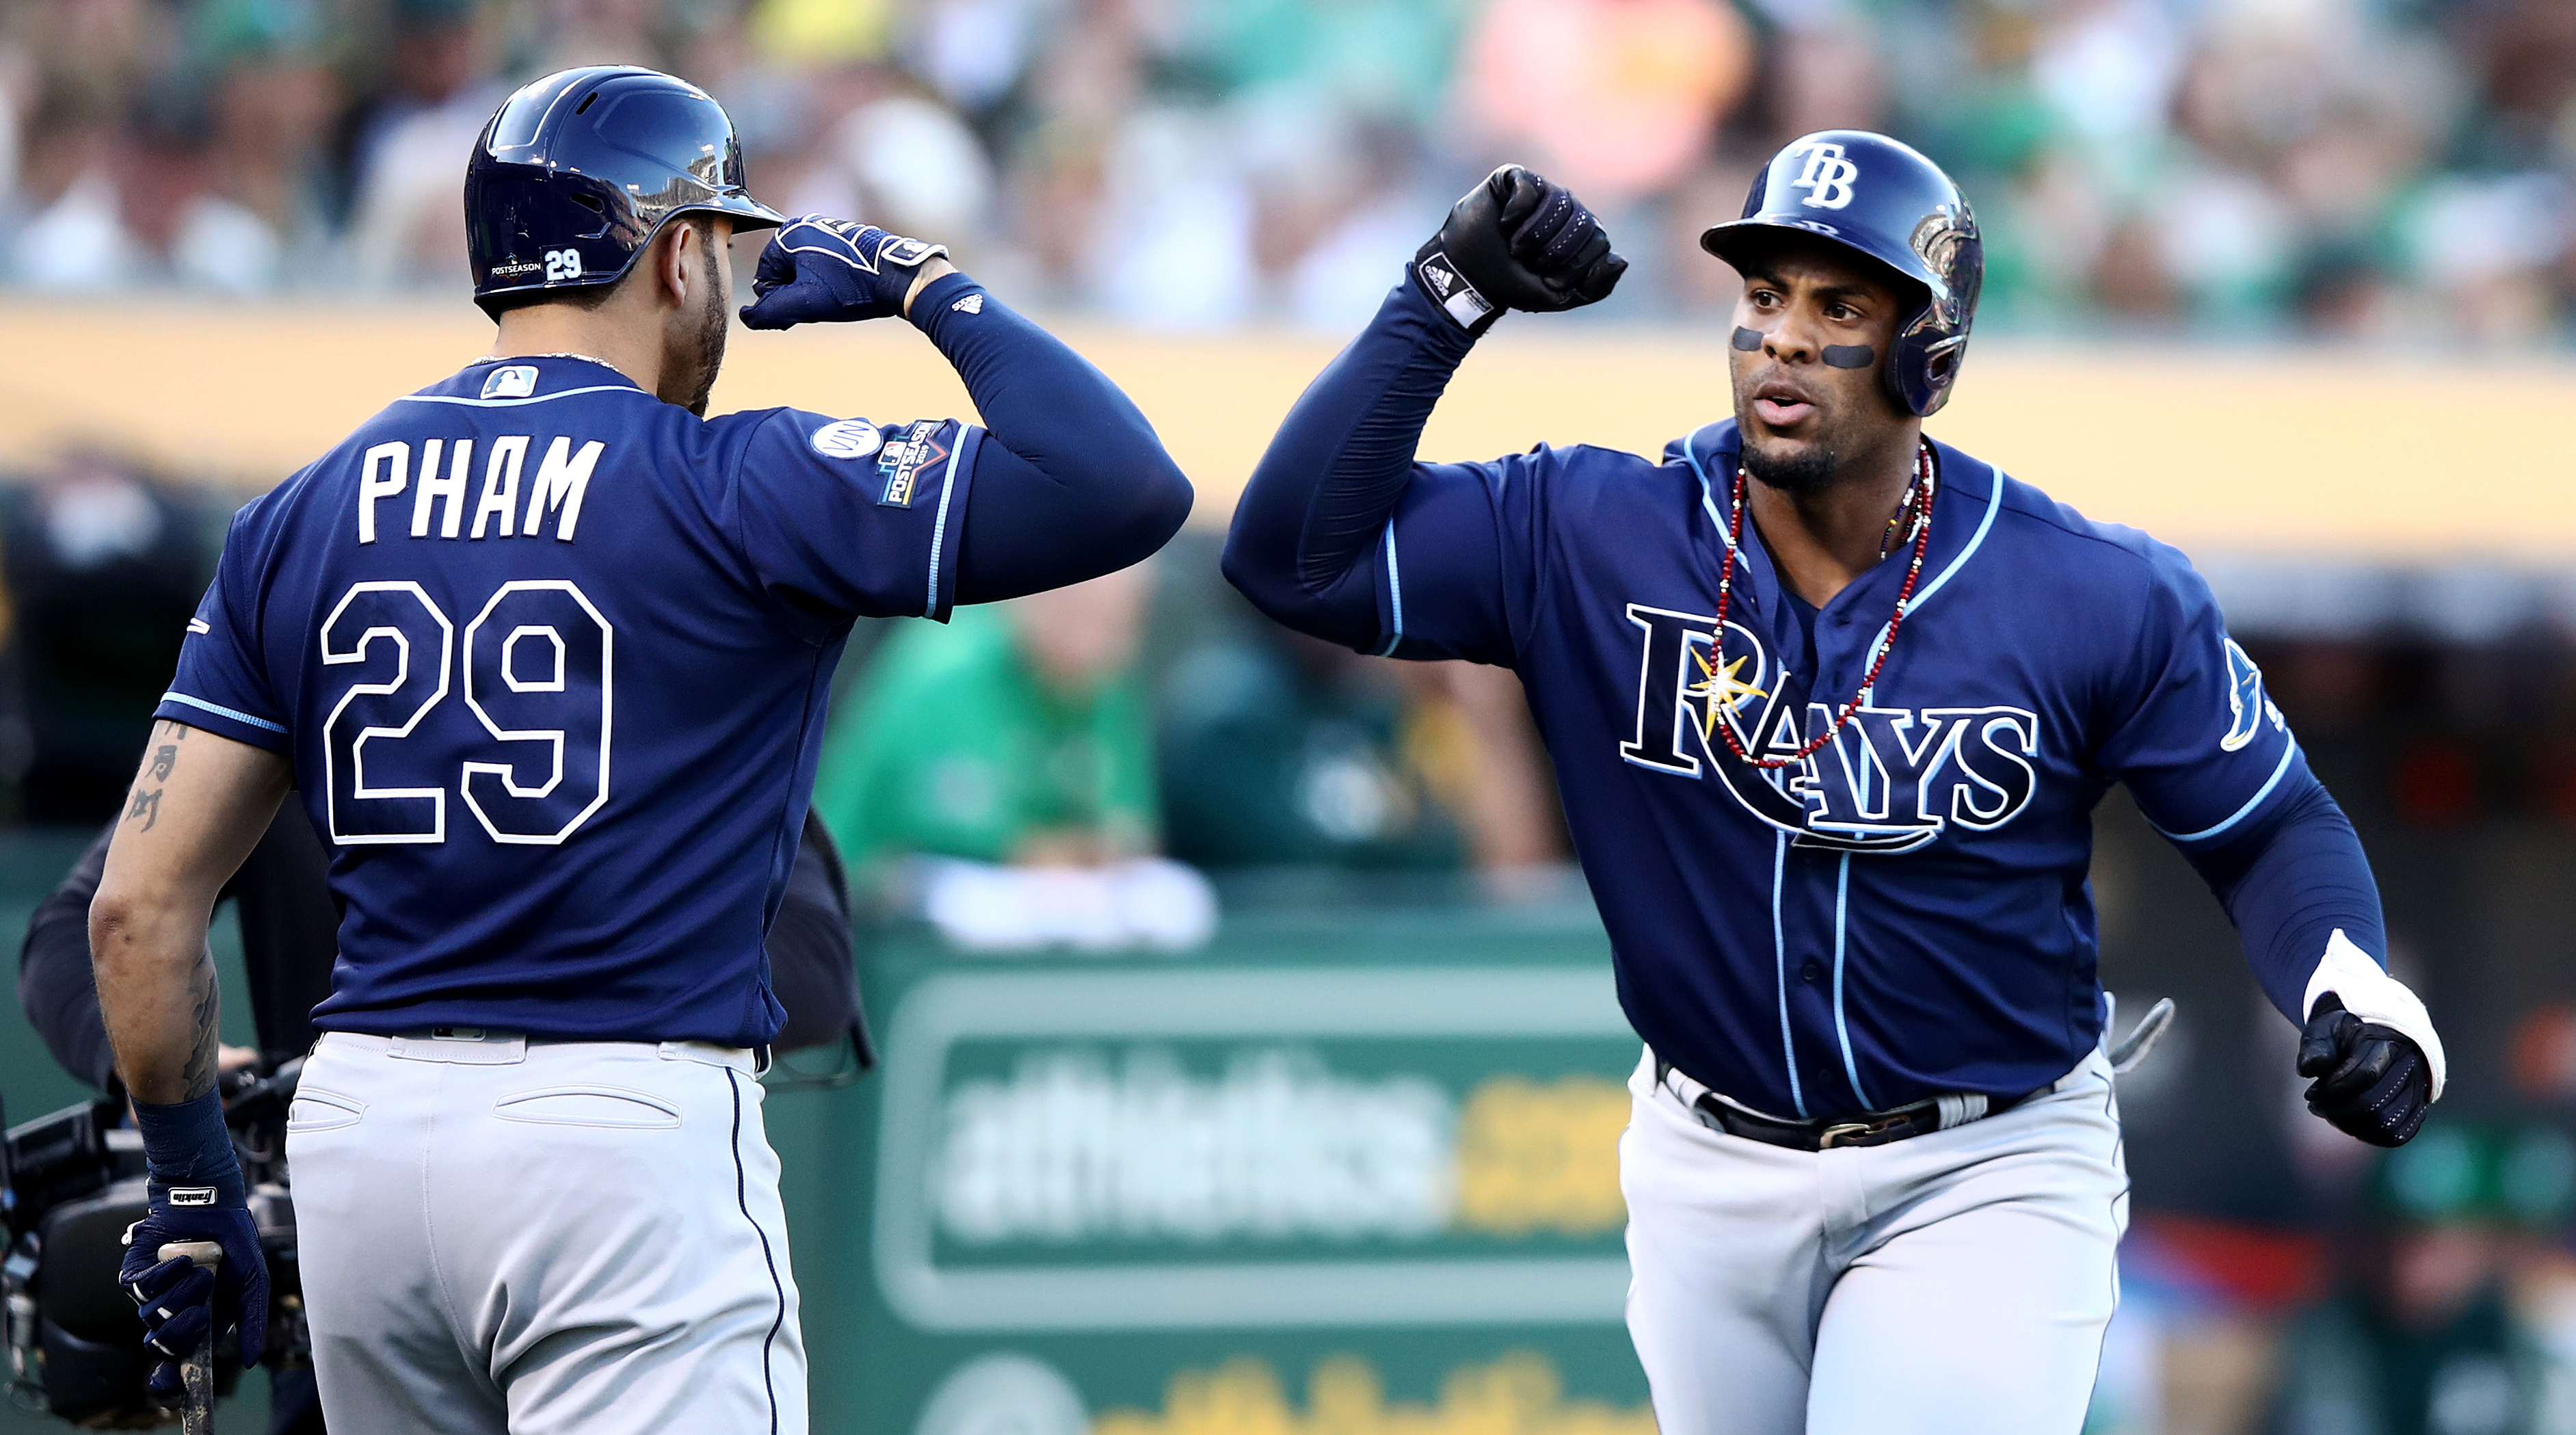 Wild Card Round - Tampa Bay Rays v Oakland Athletics